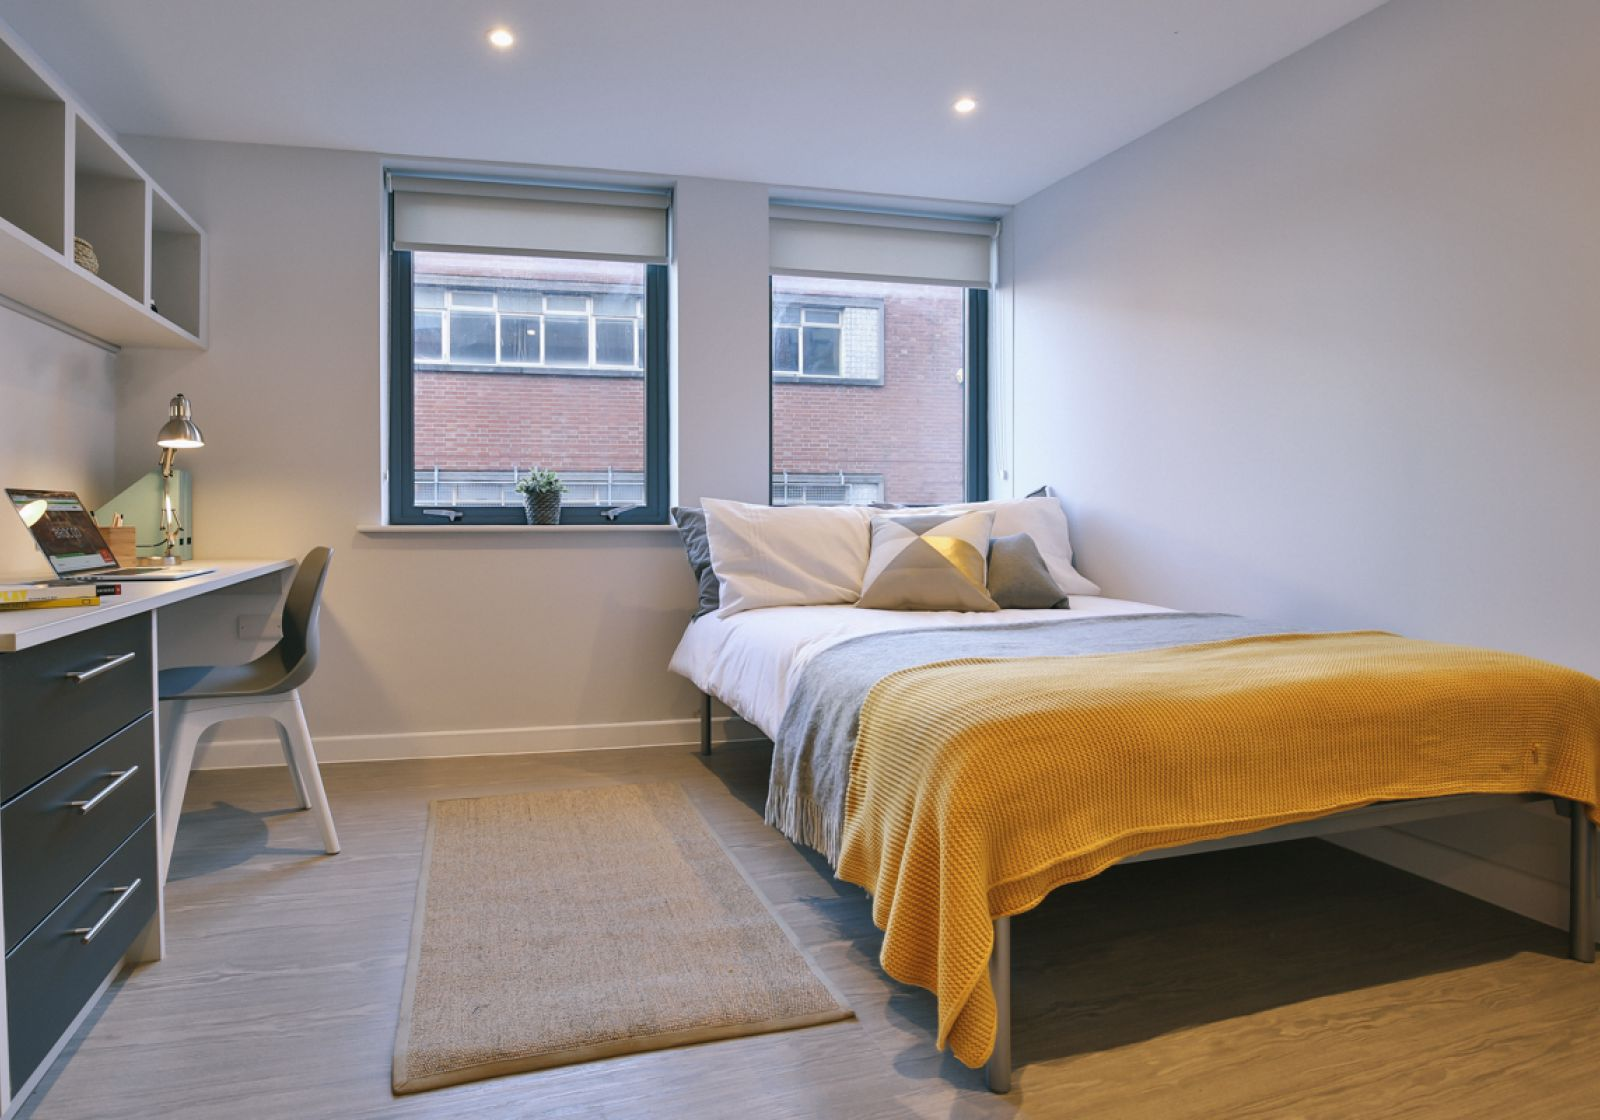 Tremendous 2 Bed Flat Iq Brocco Sheffield Iq Student Accommodation Download Free Architecture Designs Embacsunscenecom